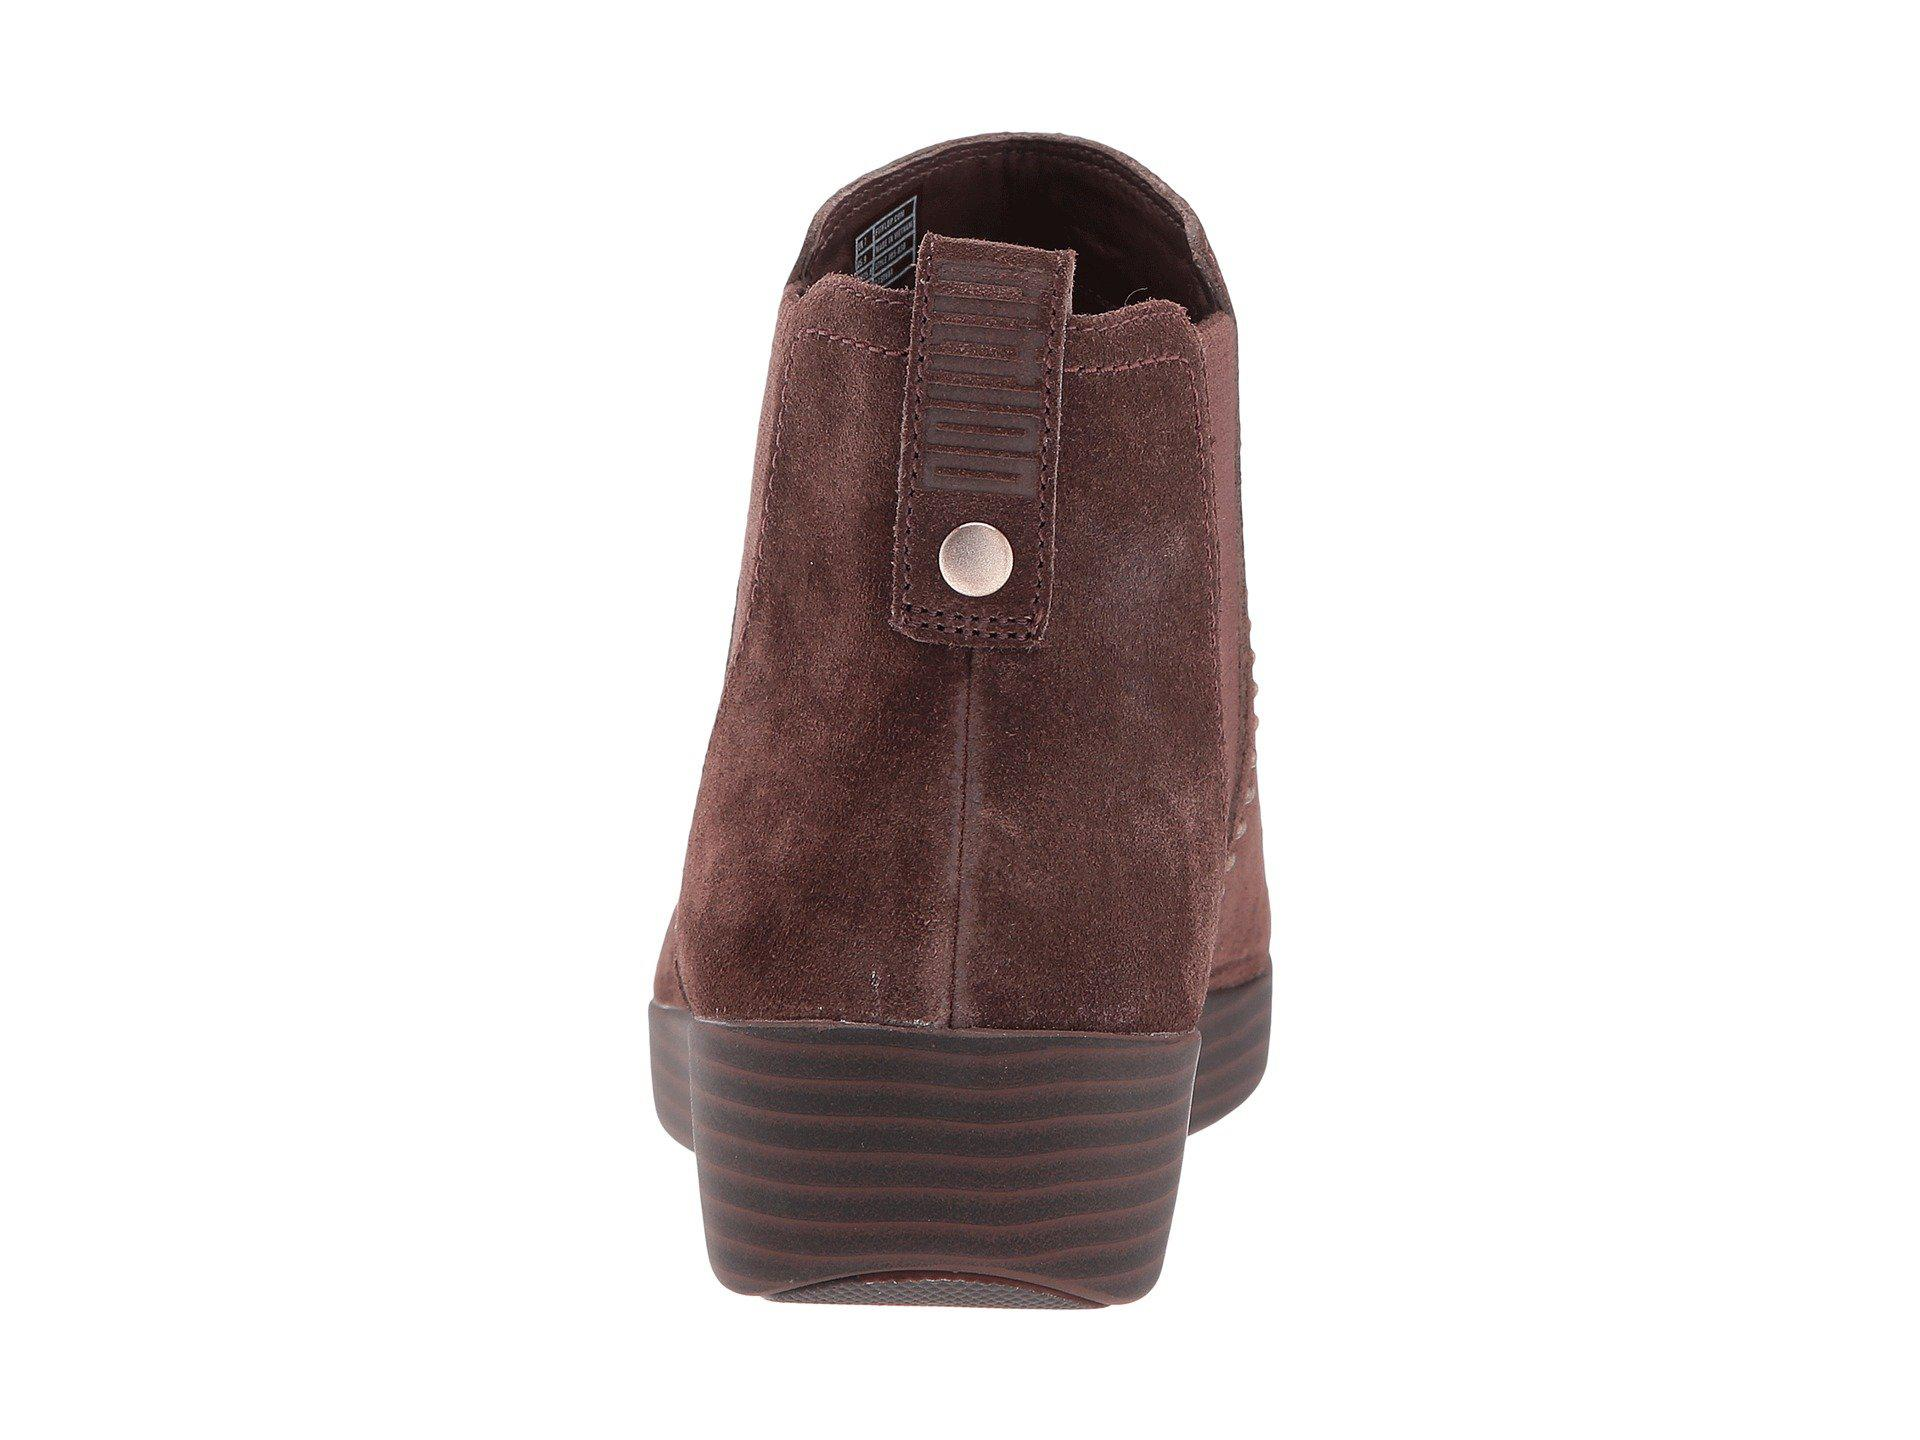 65d20a2f45 Lyst - Fitflop Superchelsea Suede Boot W  Studs in Brown - Save 22%